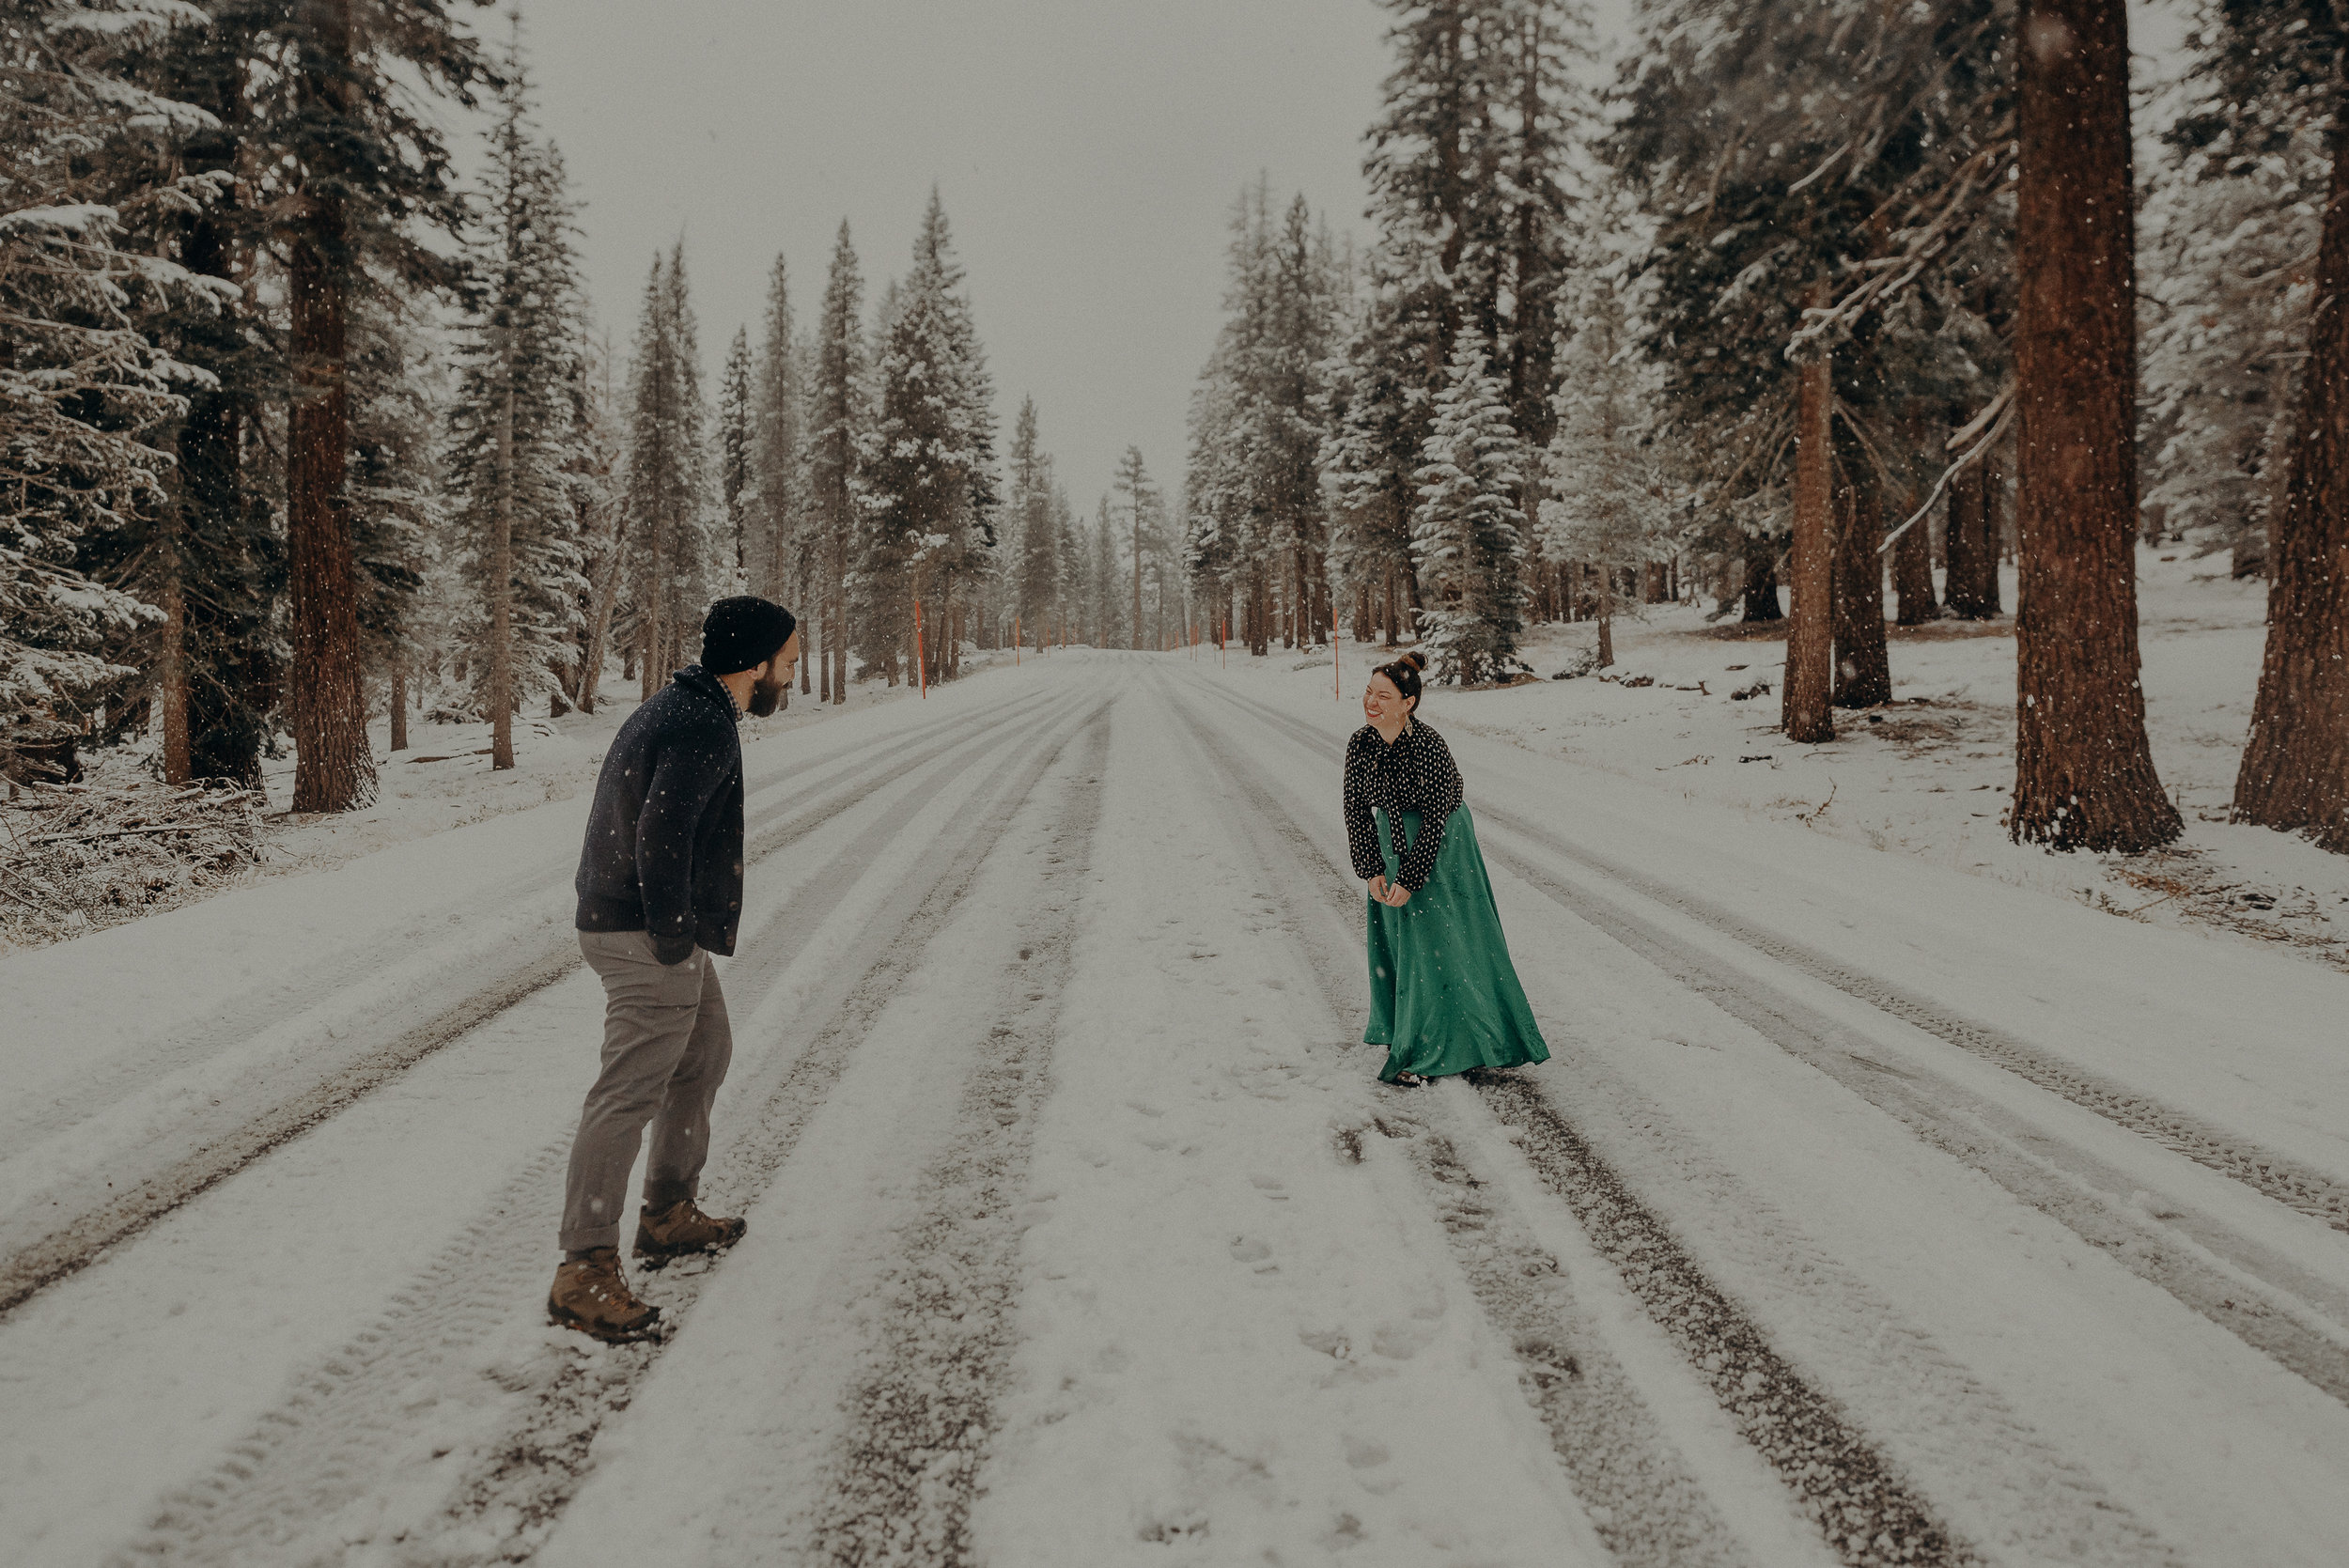 ©Isaiah + Taylor Photography - Los Angeles Wedding Photographer - Snowing engagement session-035.jpg